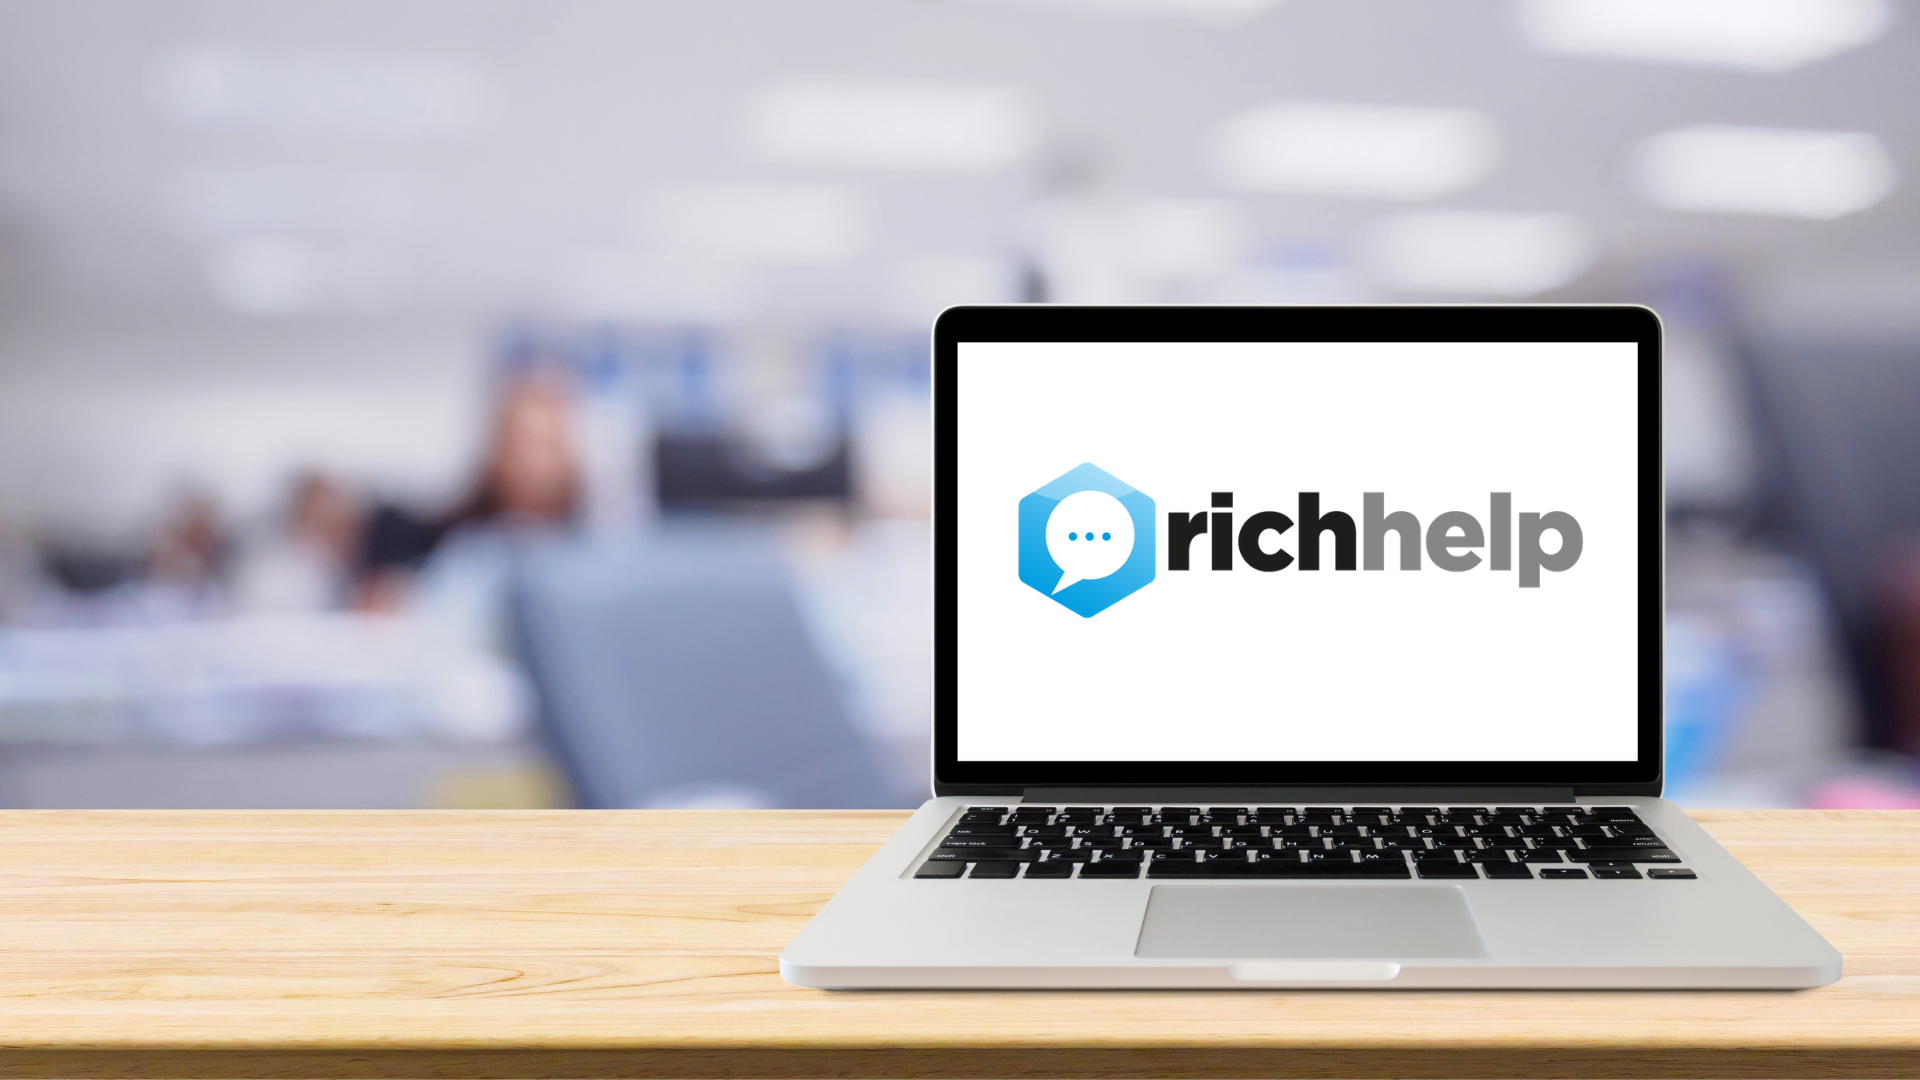 richhelp logo on computer screen.png